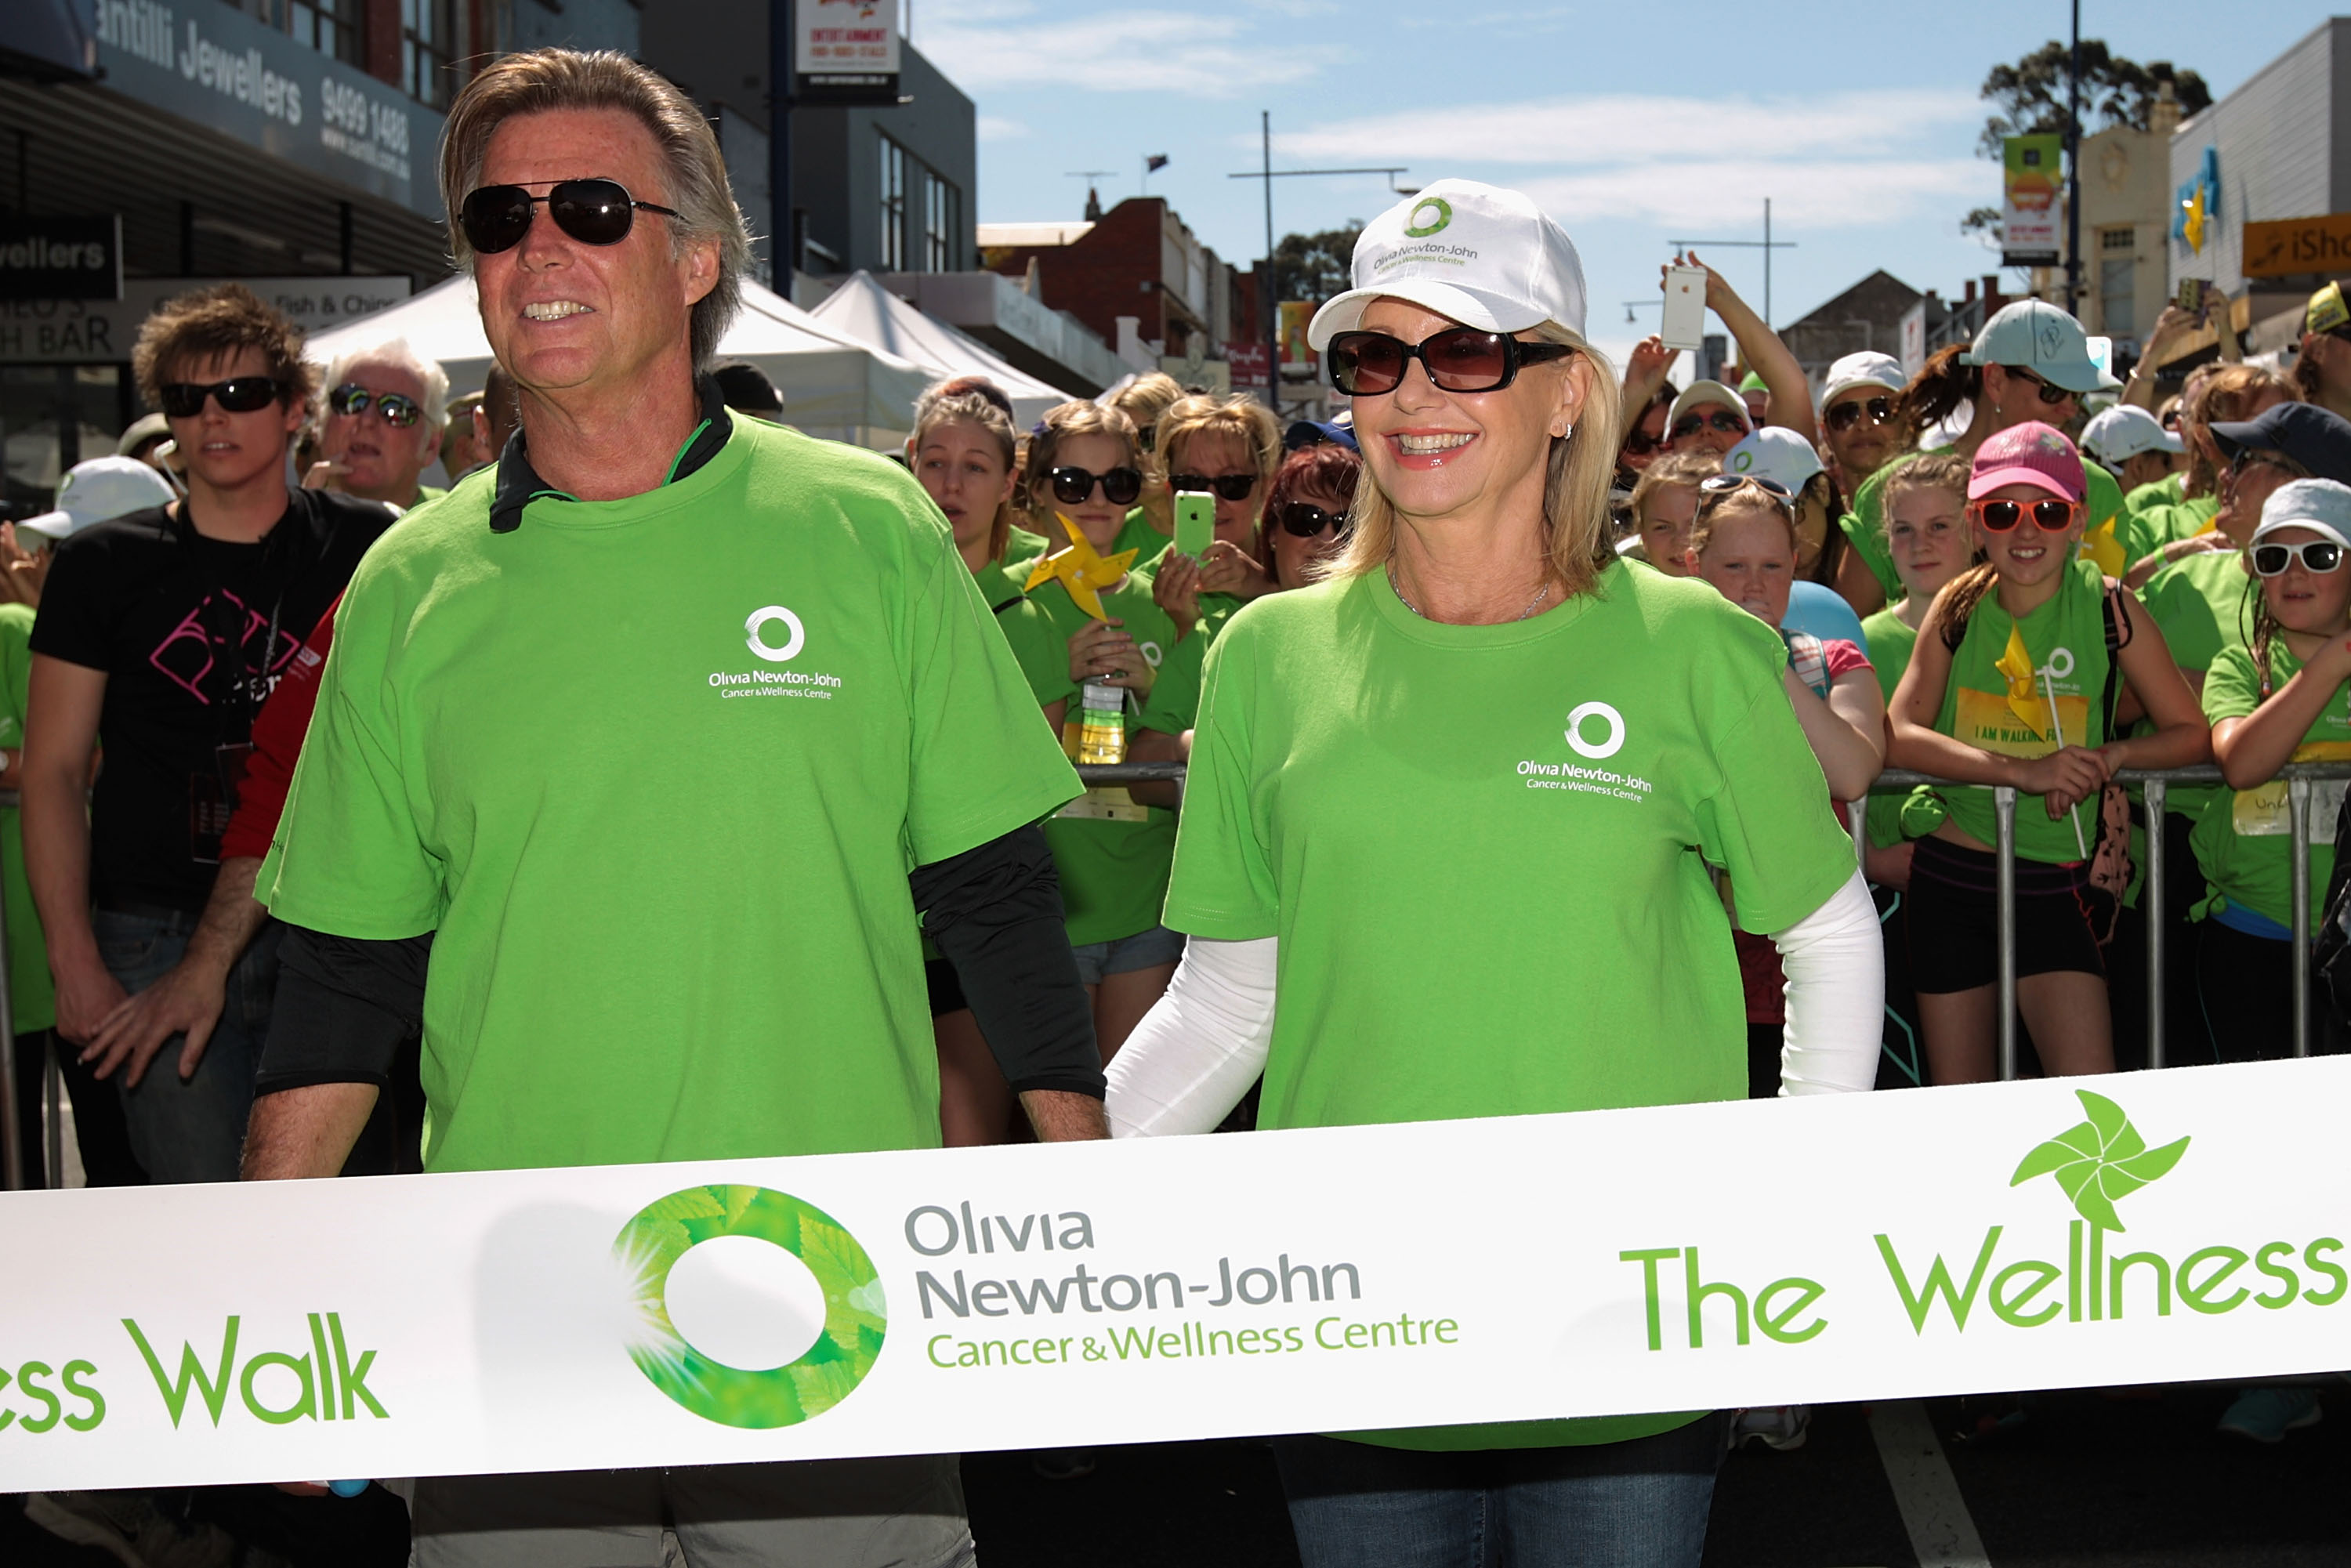 Olivia Newton-John and husband John Easterling supports the Cancer & Wellness Centre by leading the way on this charitable walk at The Centre Ivanhoe on September 28, 2014 in Melbourne, Australia. The walk aims to raise funds for the wellness and supportive care programs provided to patients.